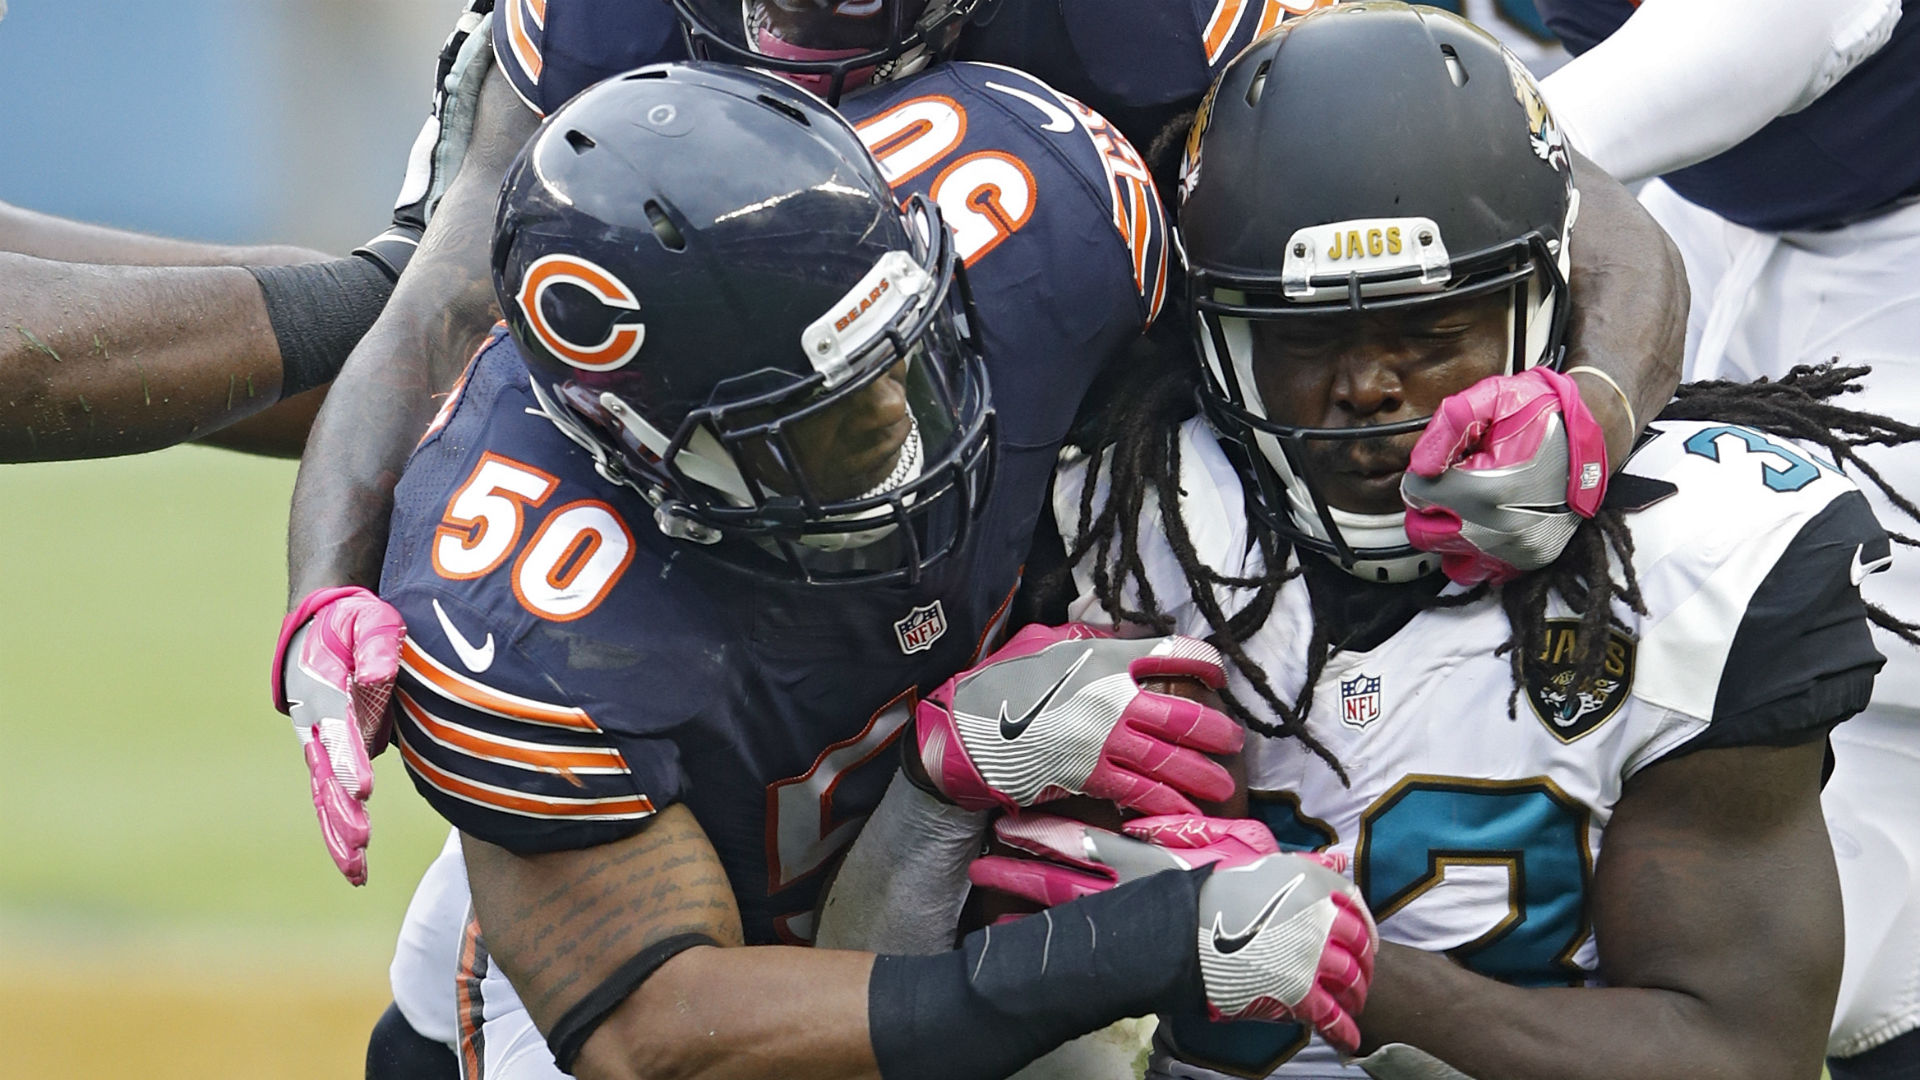 Bears Linebacker Jerrell Freeman Saves Choking Man At Airport